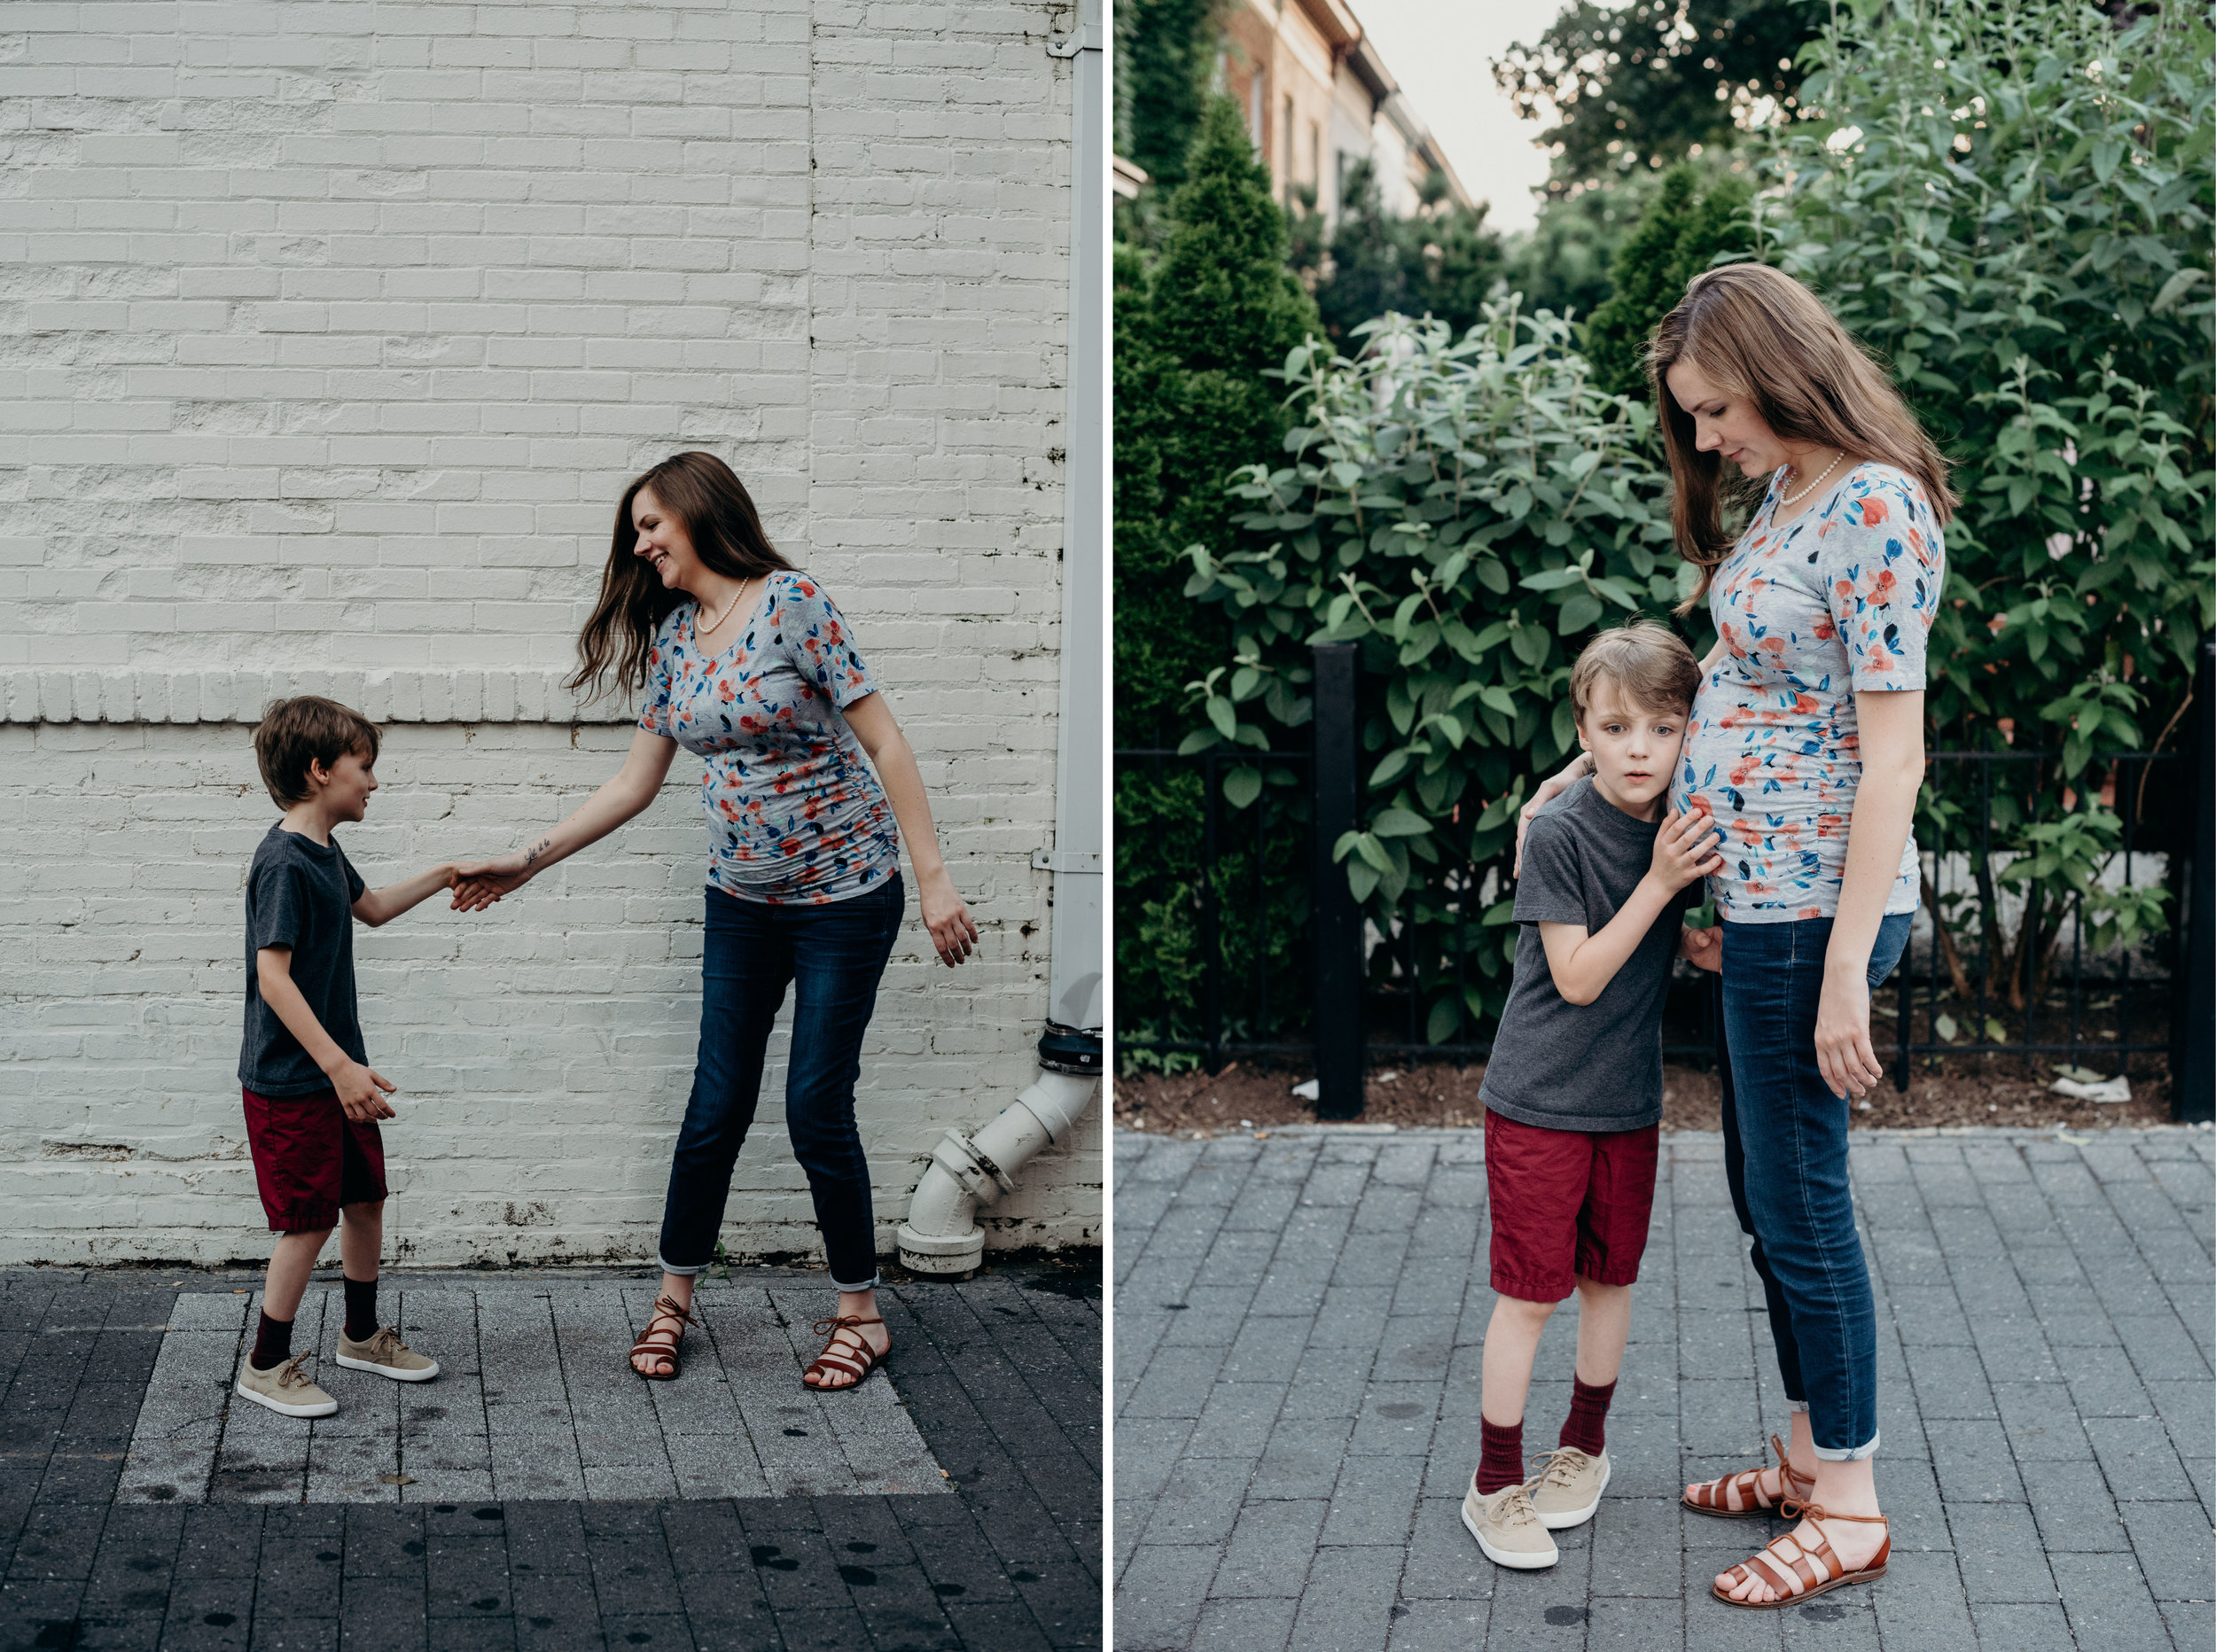 mother-son-ice-cream-date-best-family-photographer-washington-dc-lifestyle33.jpg